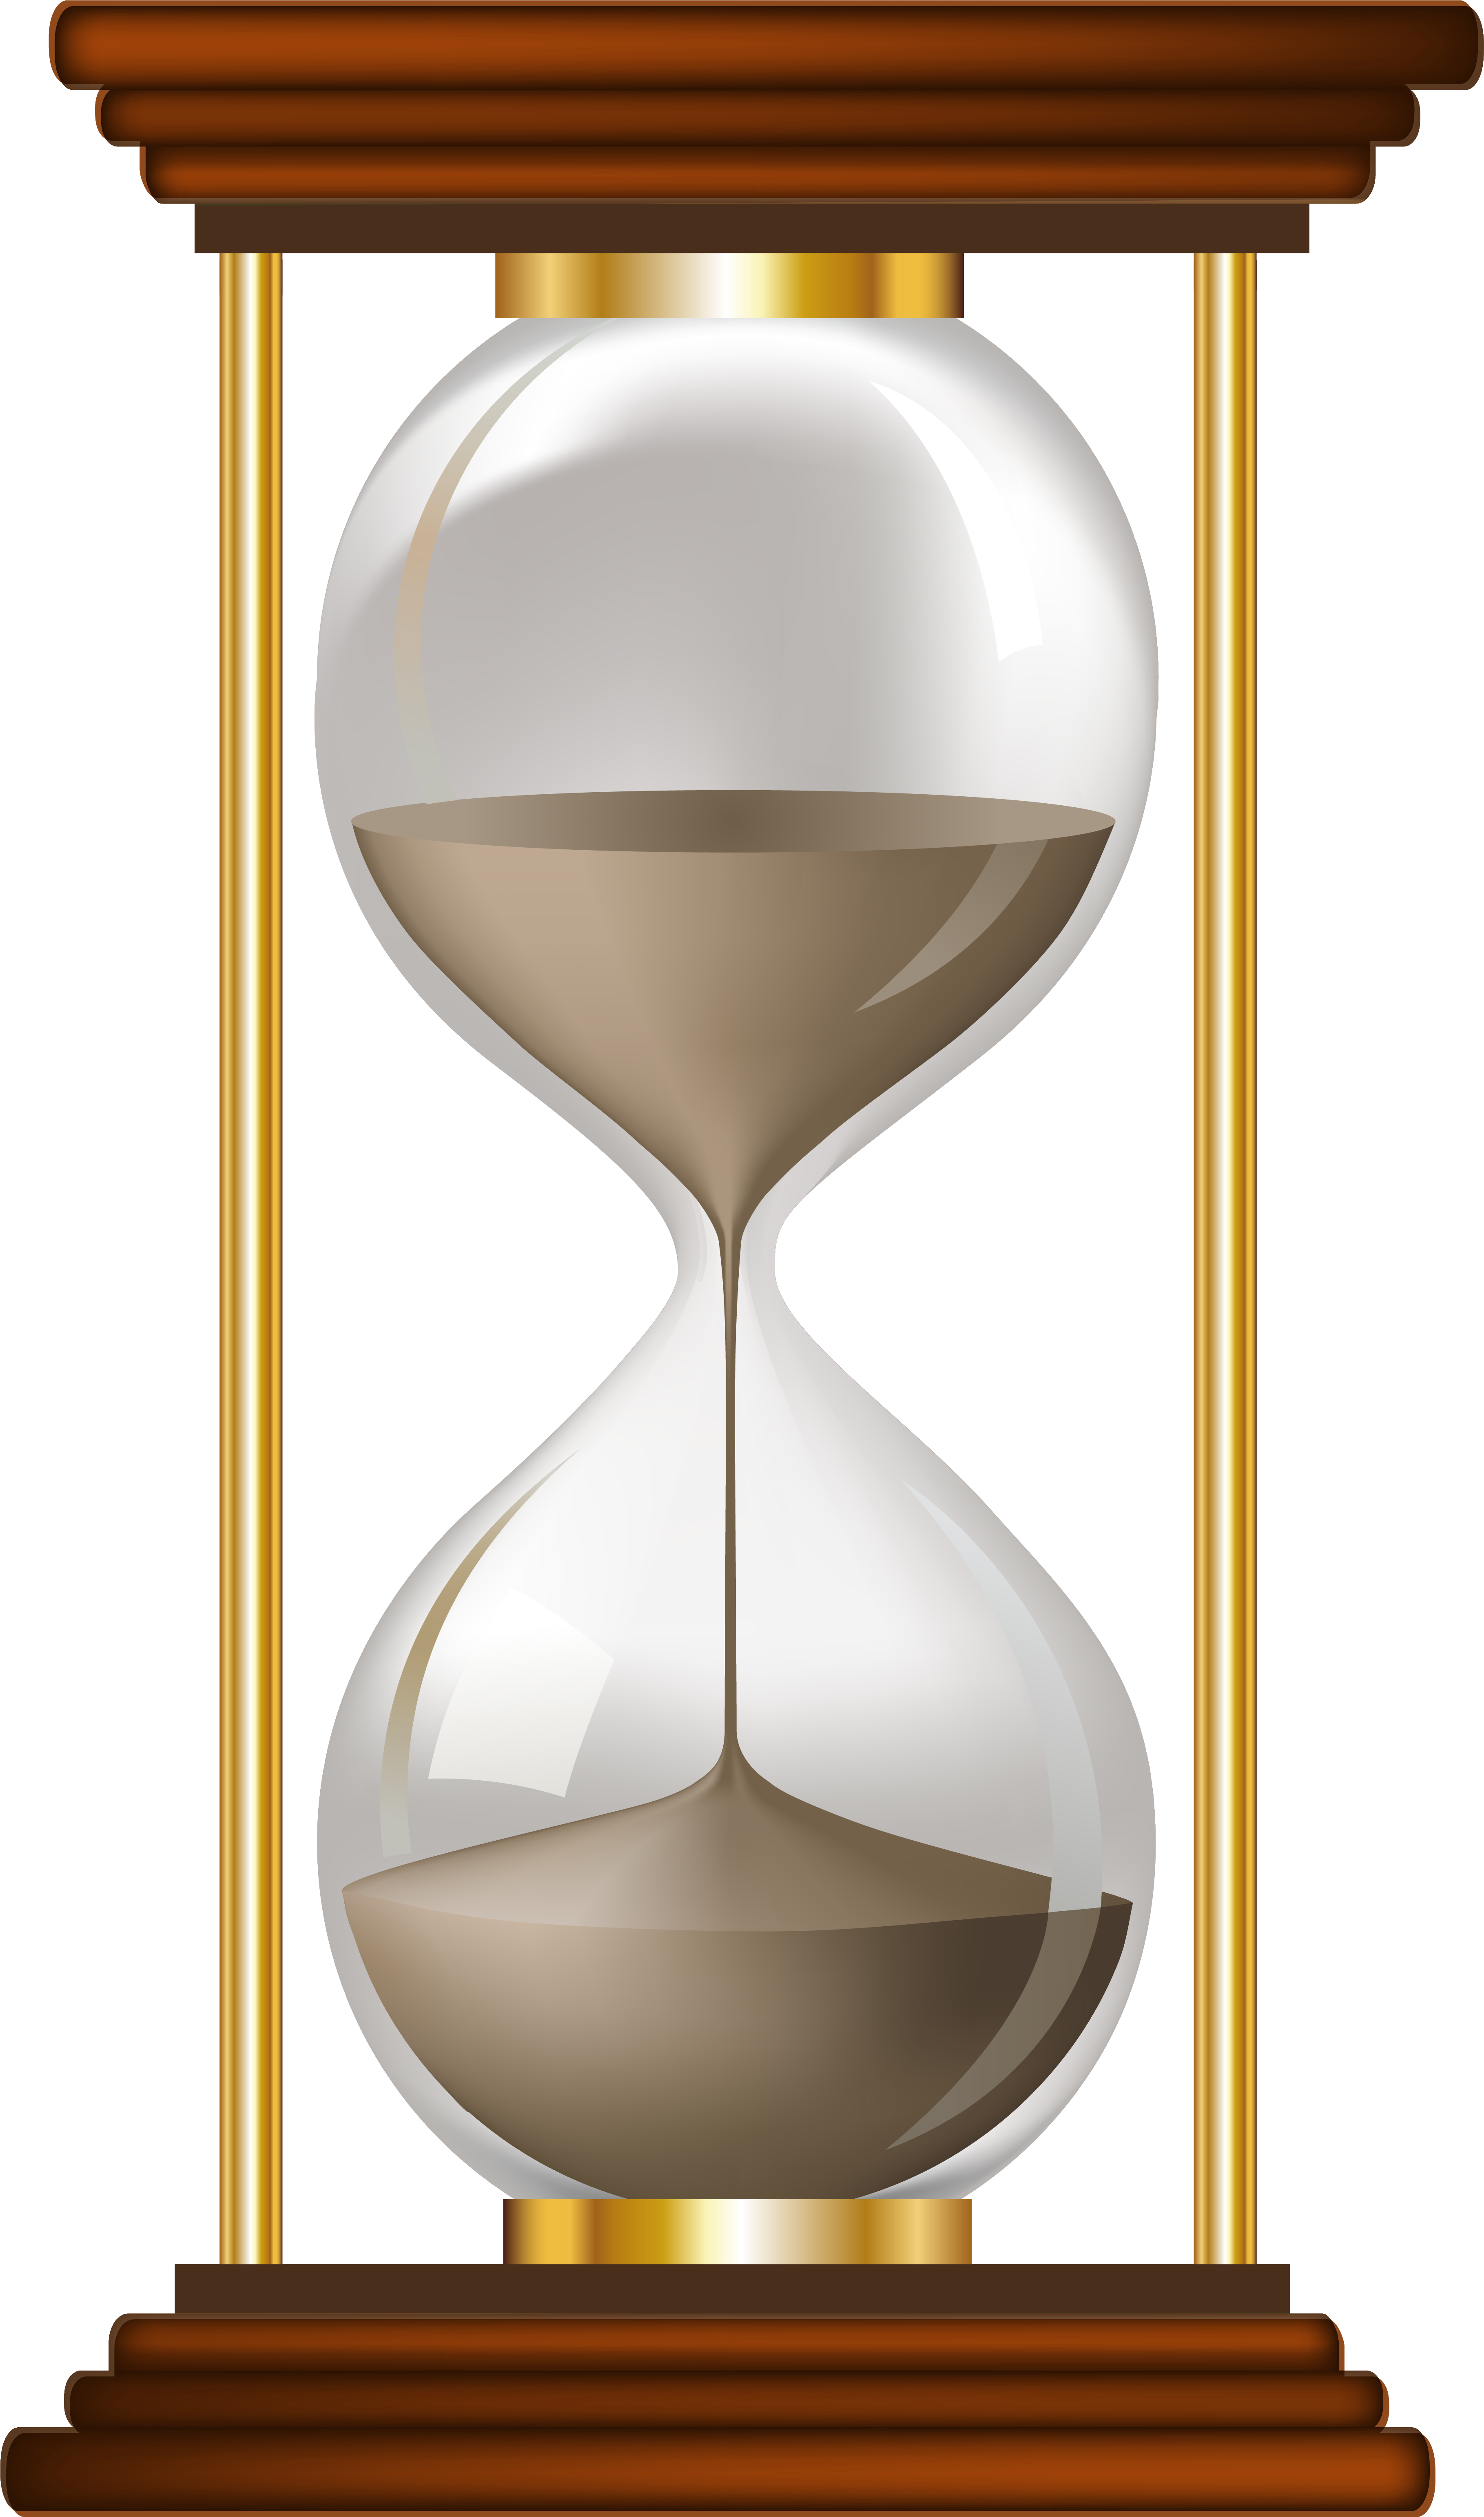 Sand Hourglass Best Web Clipart Art Images Sands Different Types Of Clocks And Watches Transparent Cartoon Jing Fm